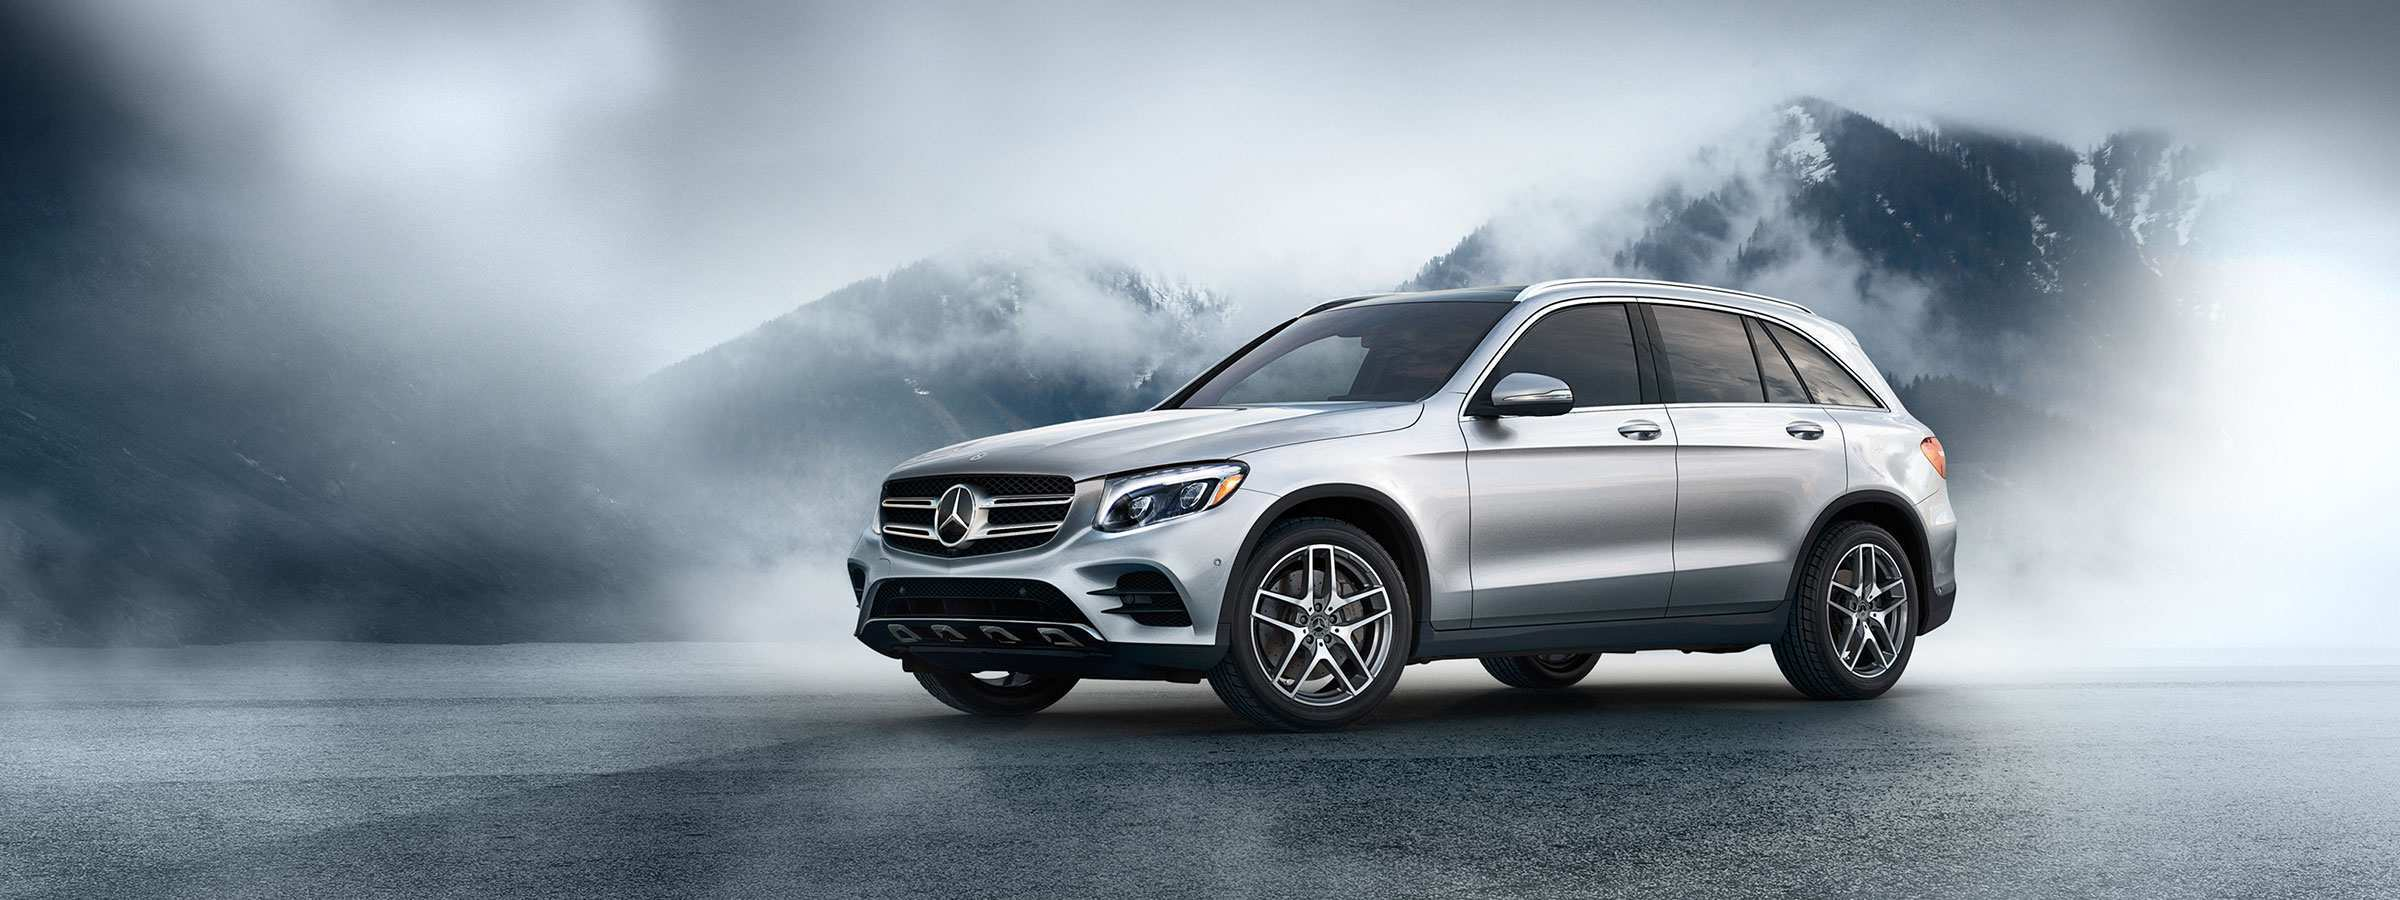 40 The Best 2019 Mercedes Diesel Suv Price Design And Review